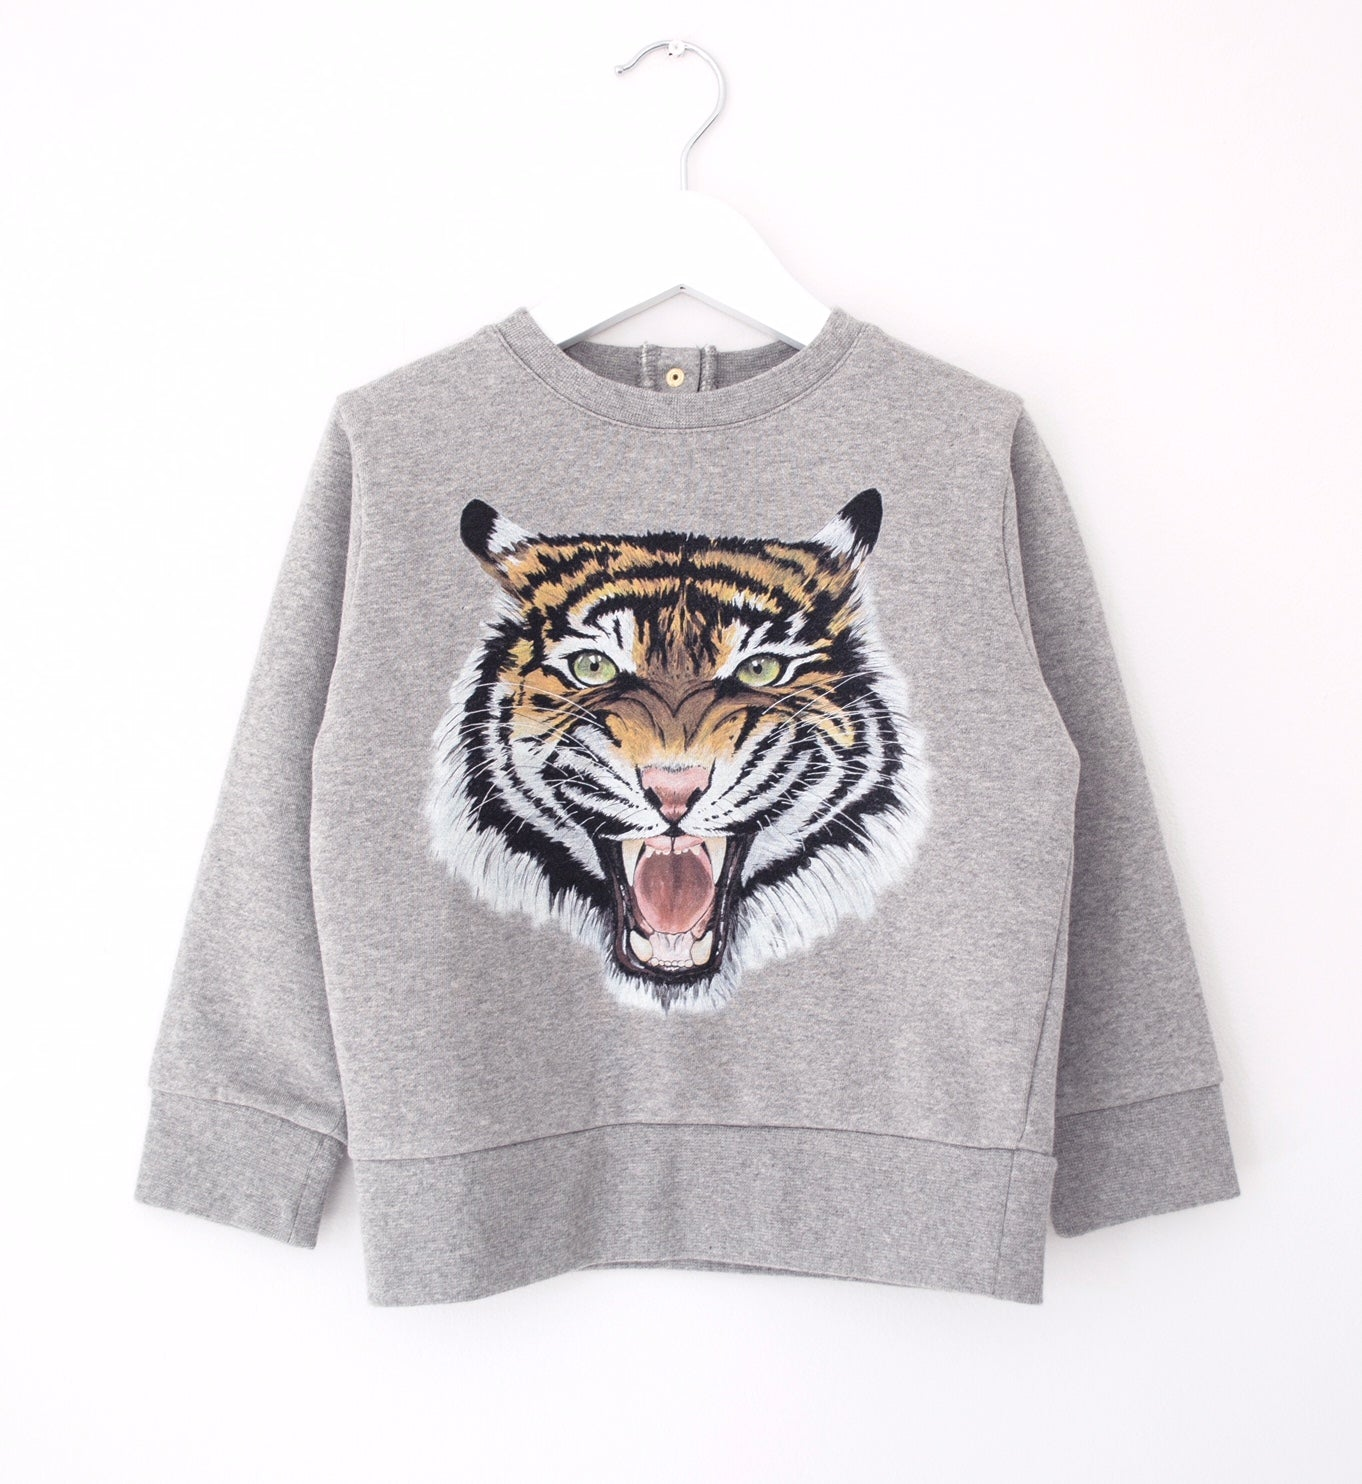 grey tiger children's sweat soft organic premium cotton in a modern shape with the best tiger face you will find ever!